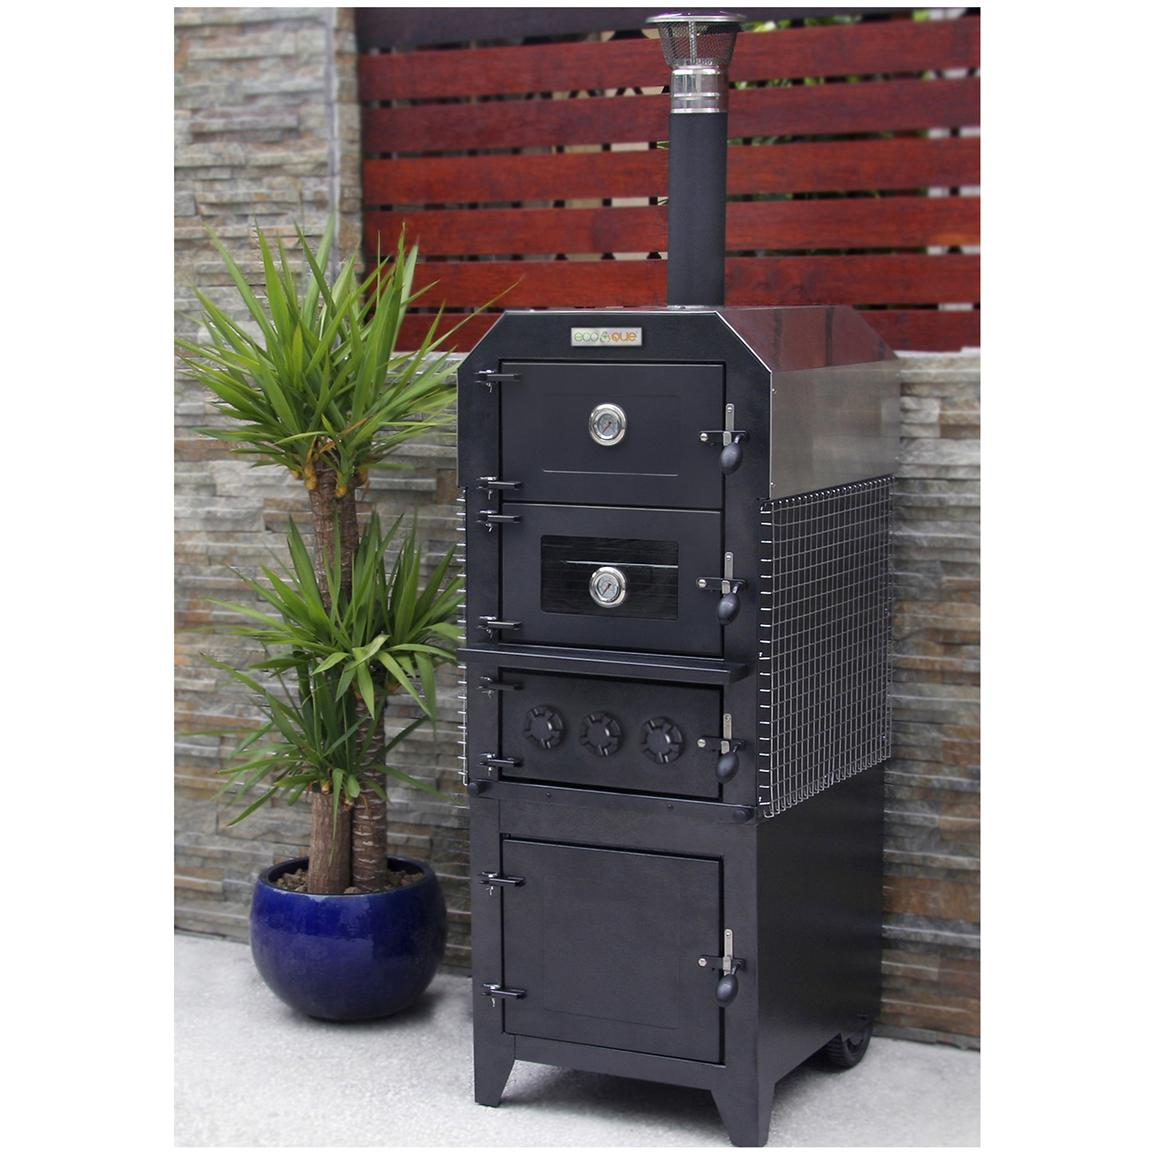 EcoQue® Wood-fired Pizza Oven and Smoker